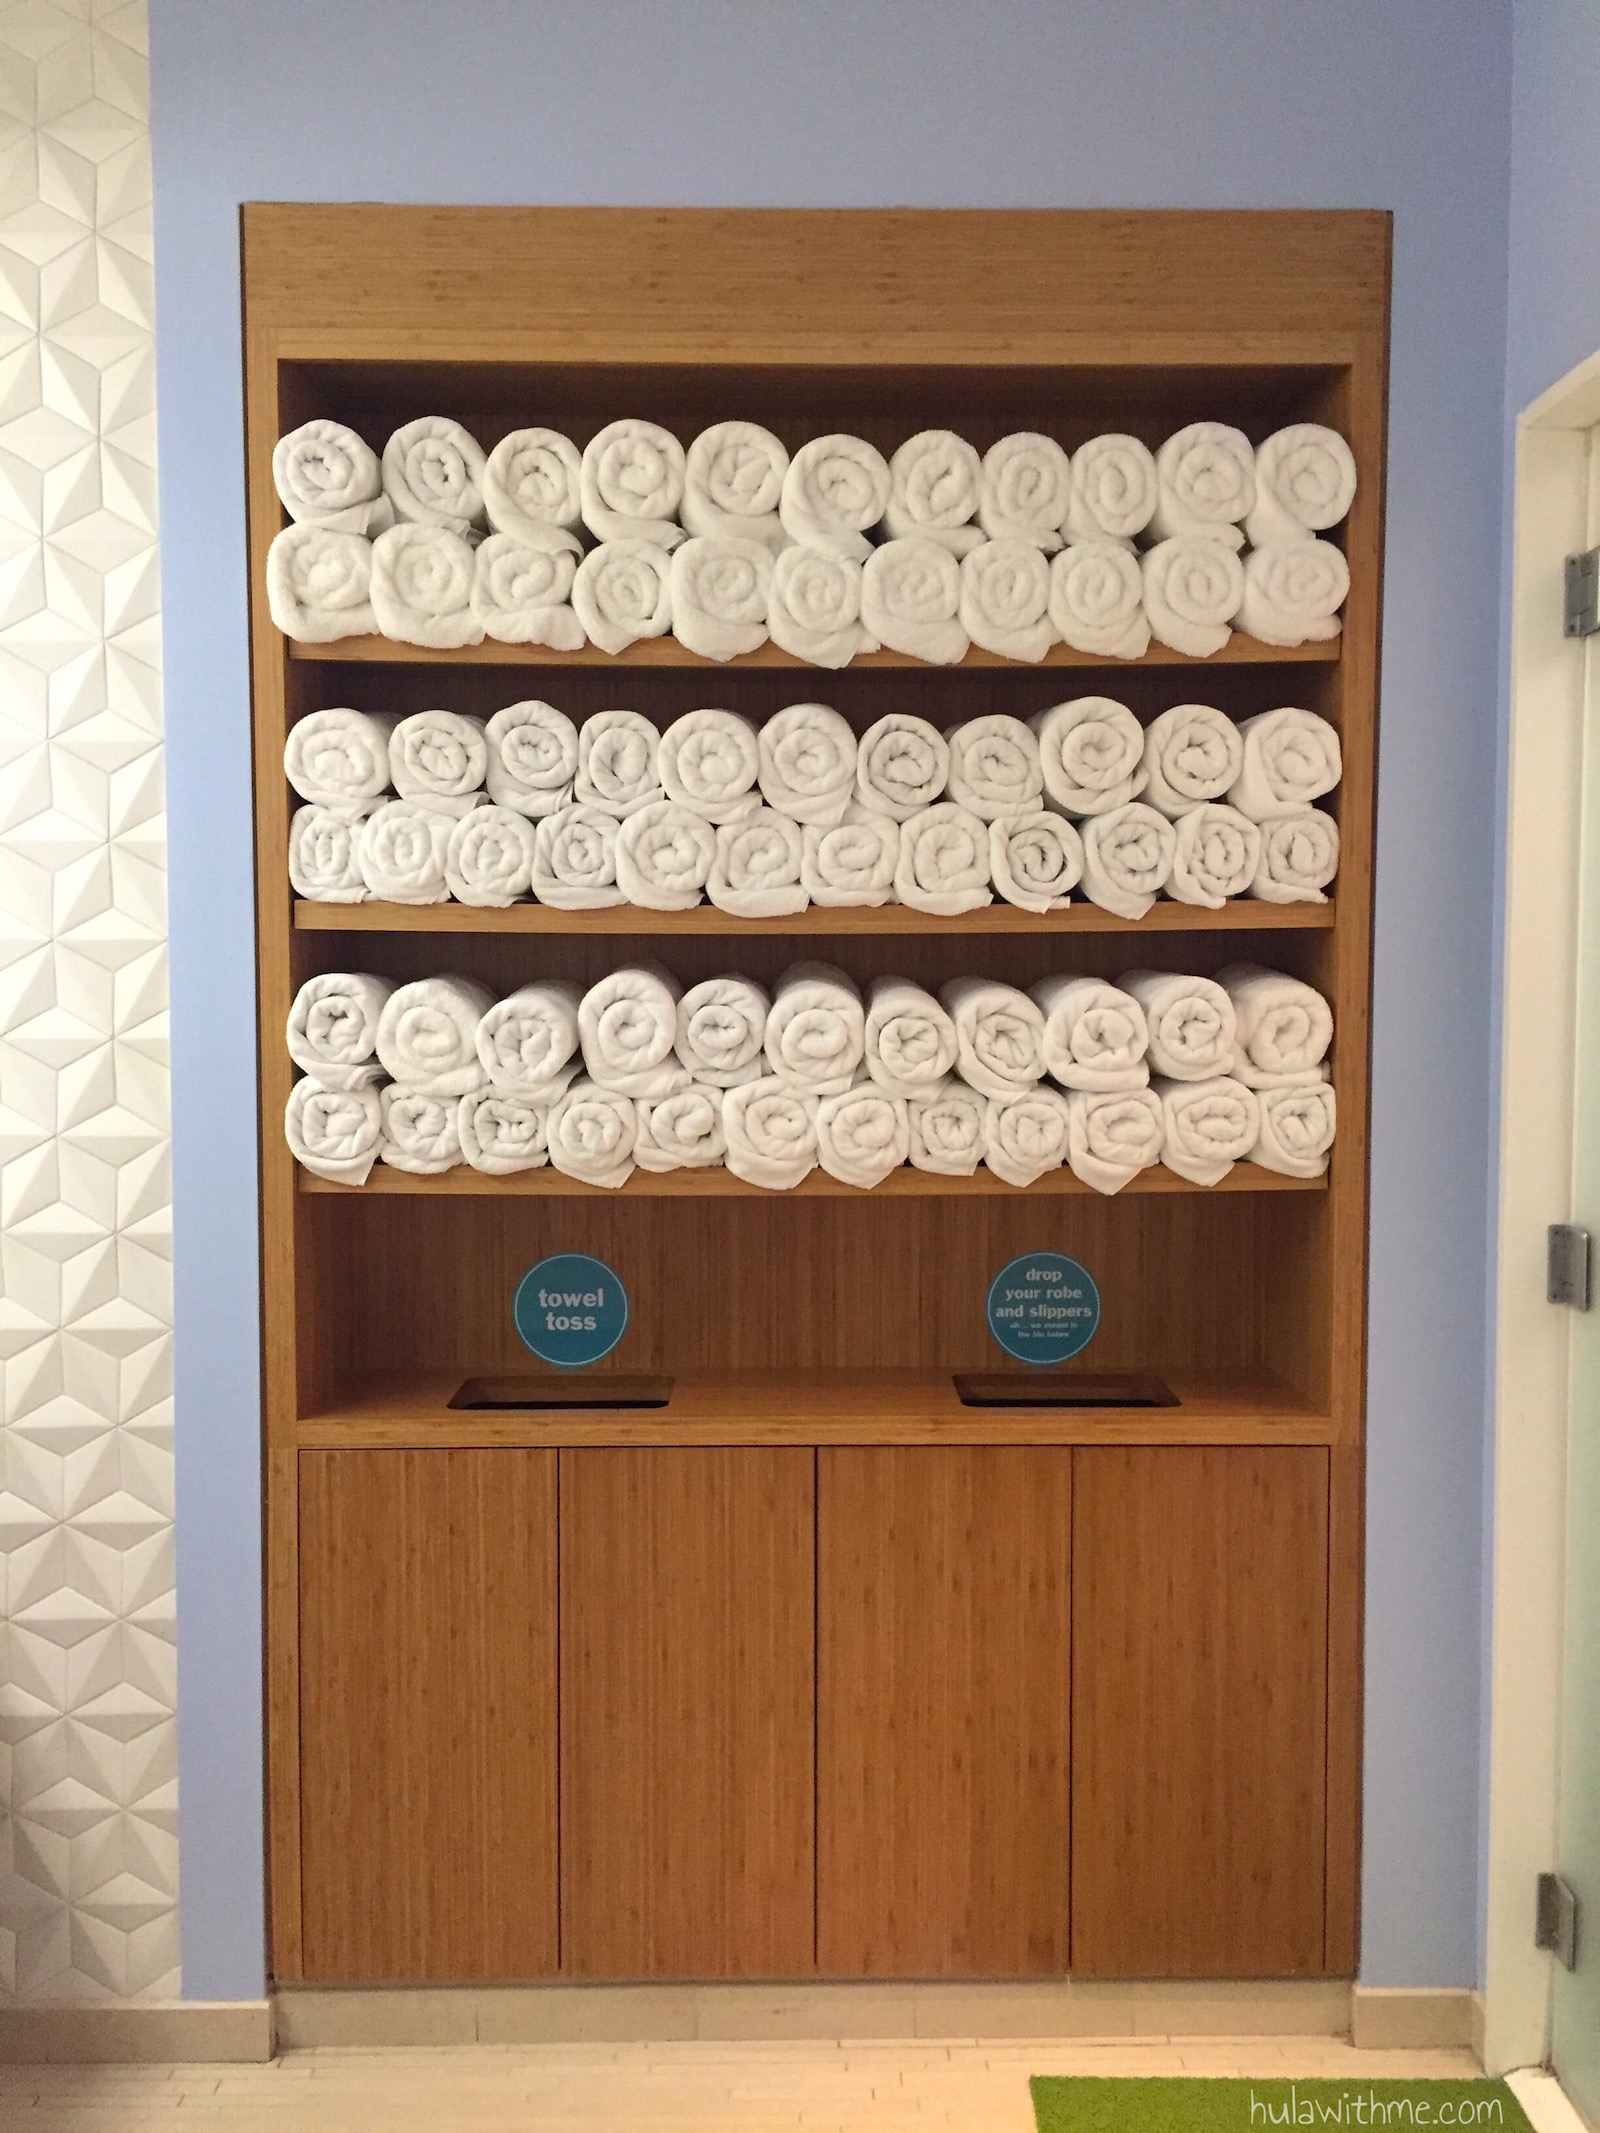 Bliss Spa in Boston, MA: Inside the ladies' locker room.